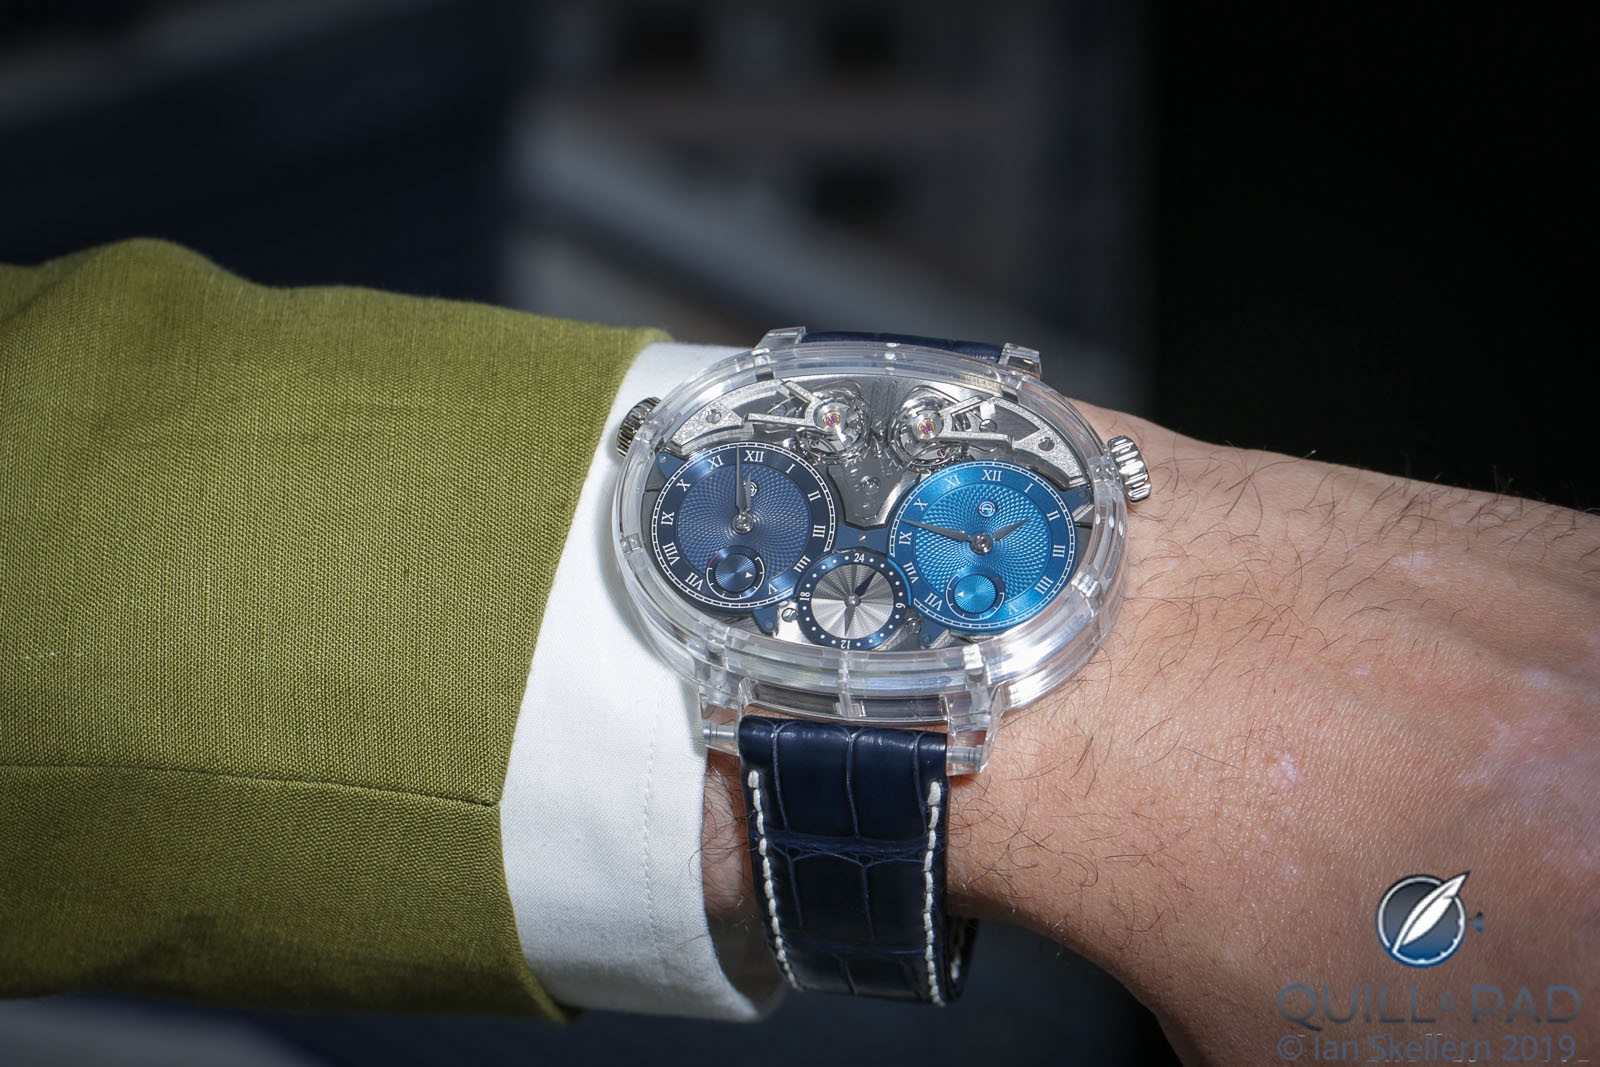 Armin Strom Dual Time Resonance Sapphire on the wrist